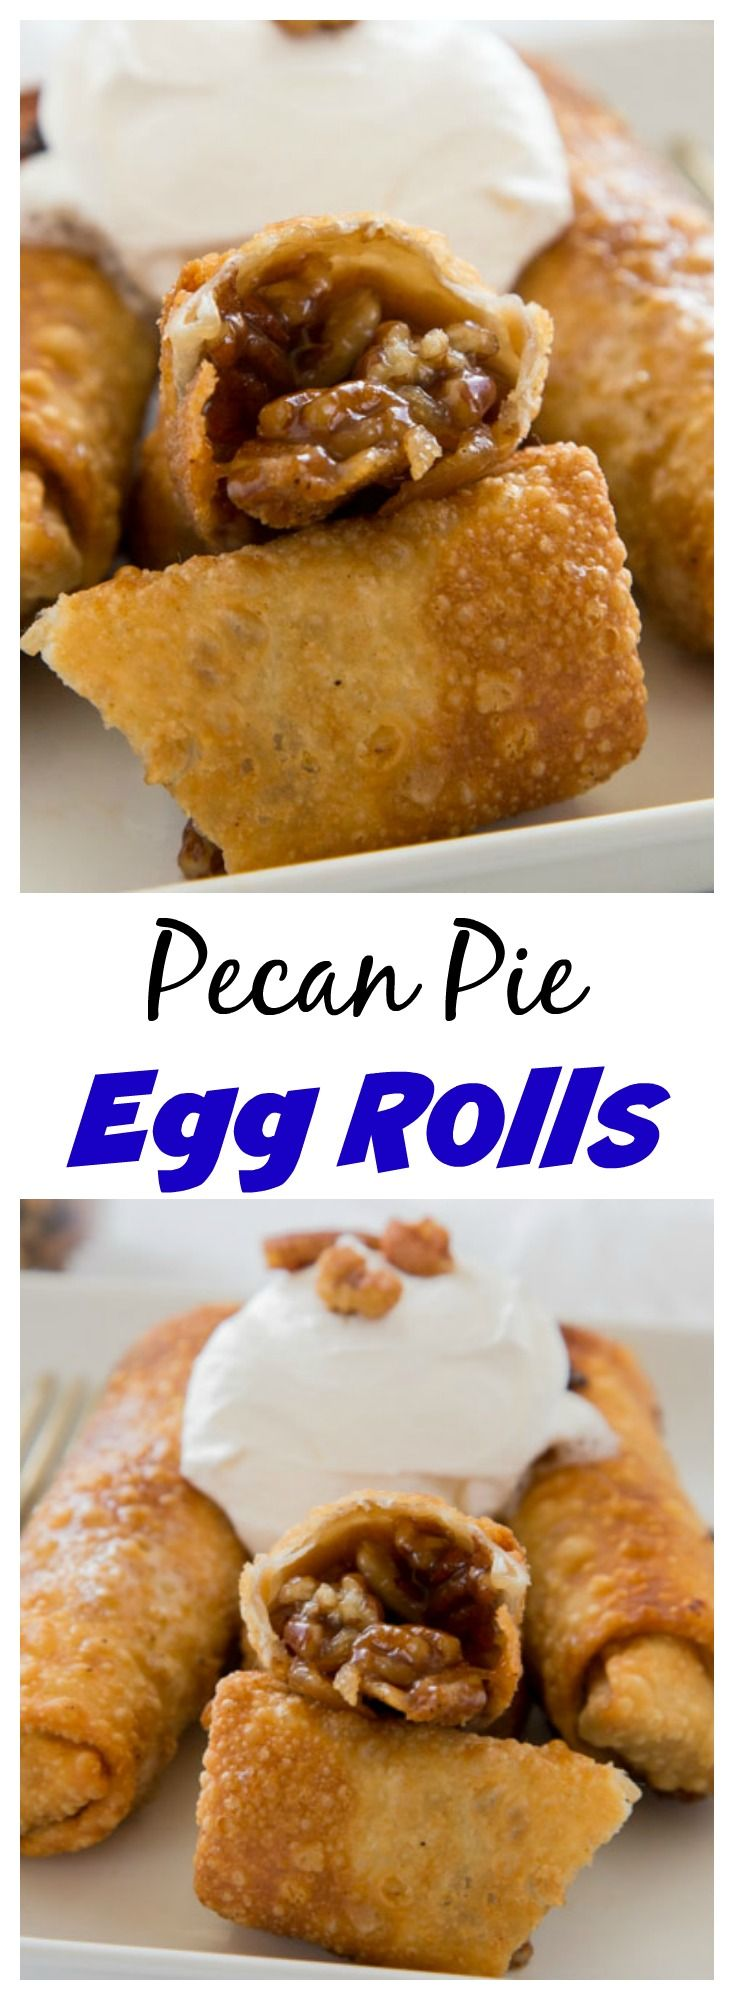 Pecan Pie Egg Rolls – instead of traditional pecan pie, turn it into something fun.  Gooey pecan pie filling inside of a crispy egg roll and topped with whipped cream!